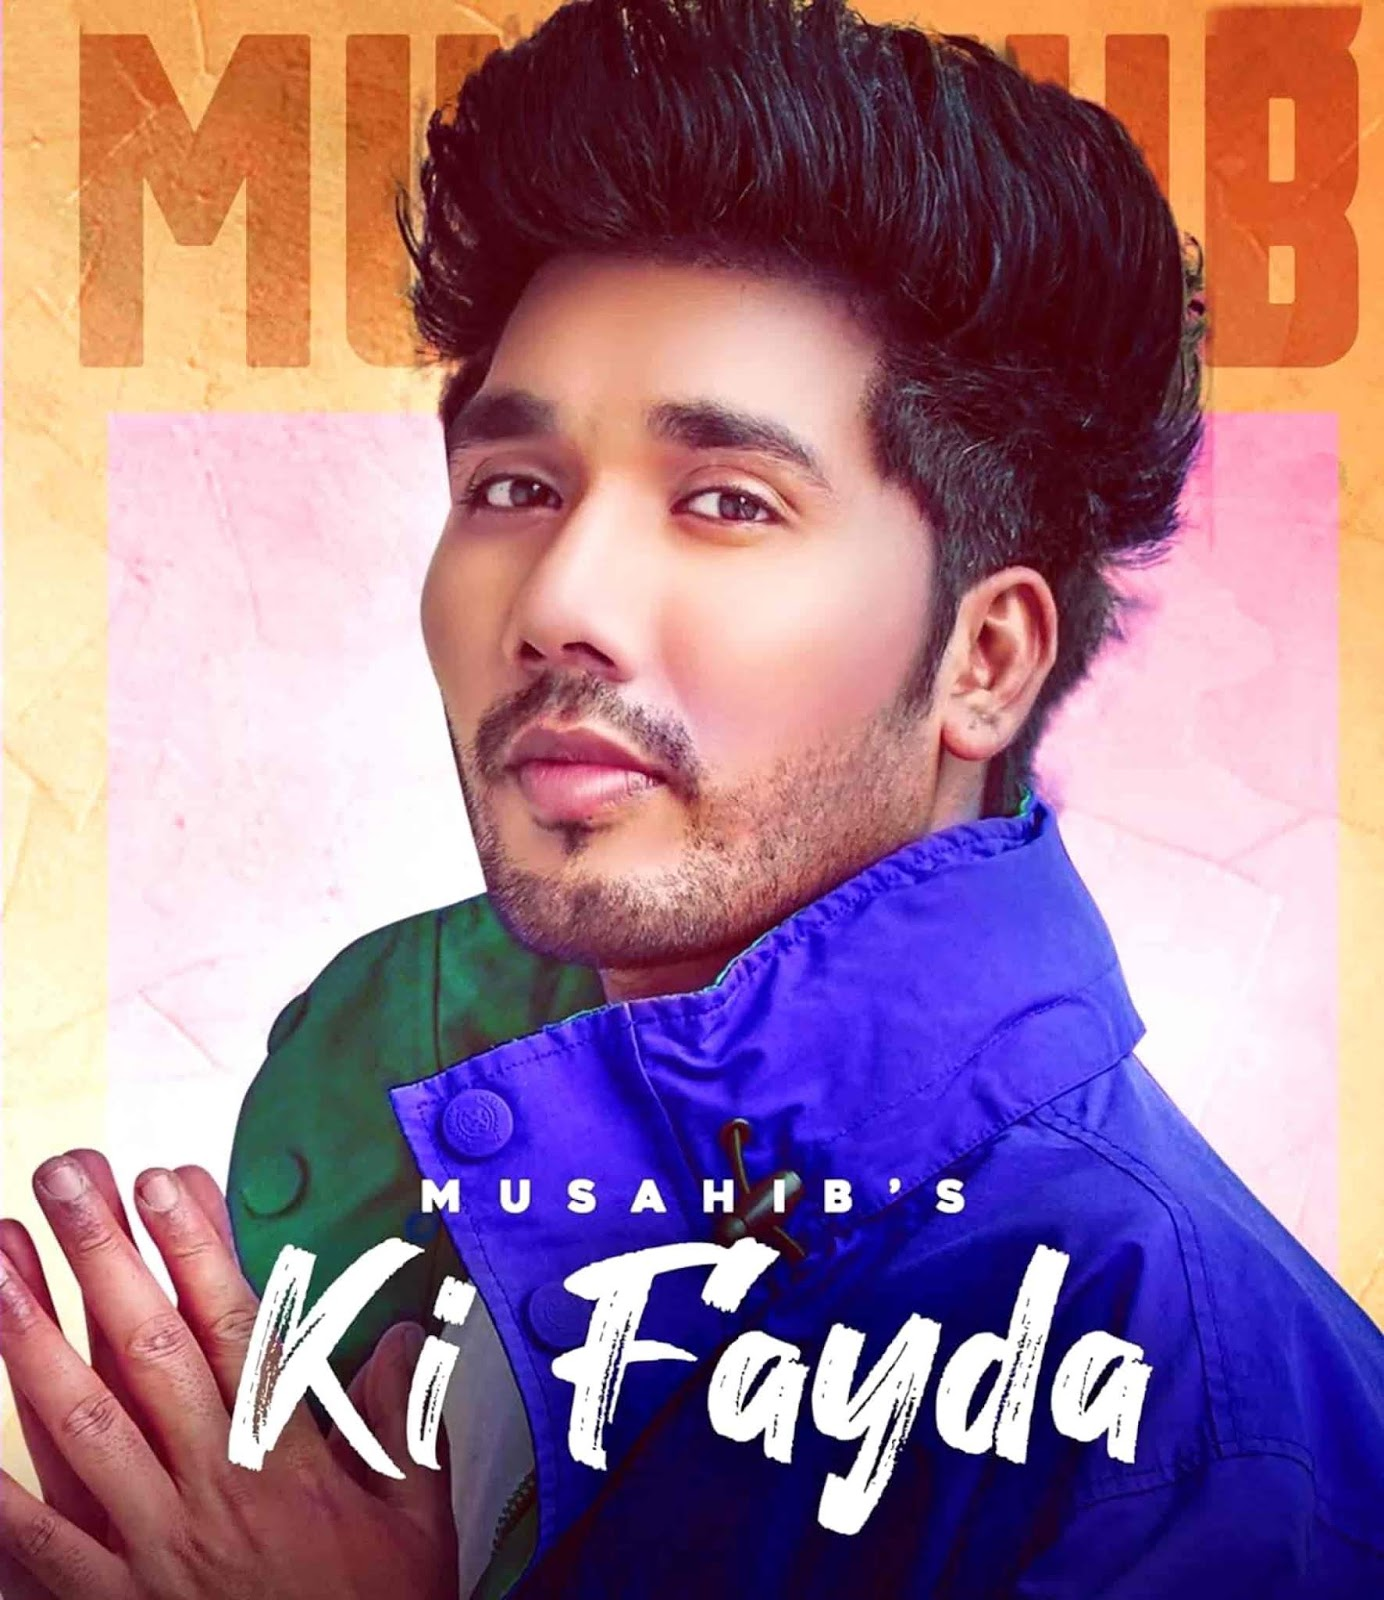 Ki Fayda Song Image By Musahib